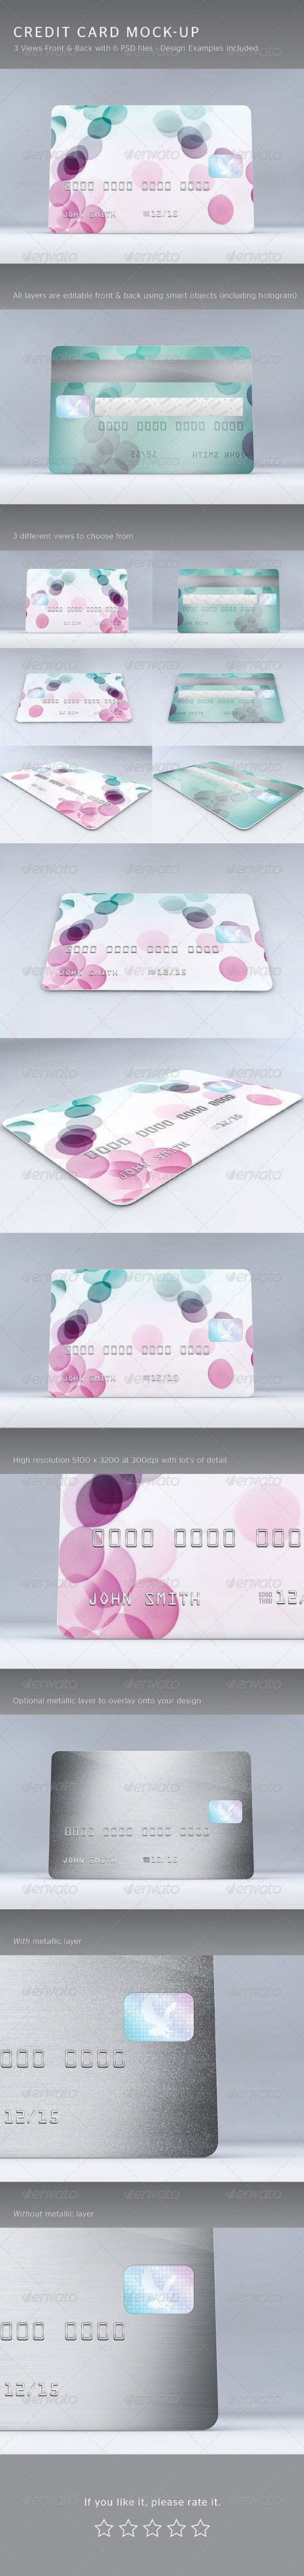 Credit Card Mockup 4308346 » Free Special GFX Posts Vectors AEP Projects PSD Web Templates